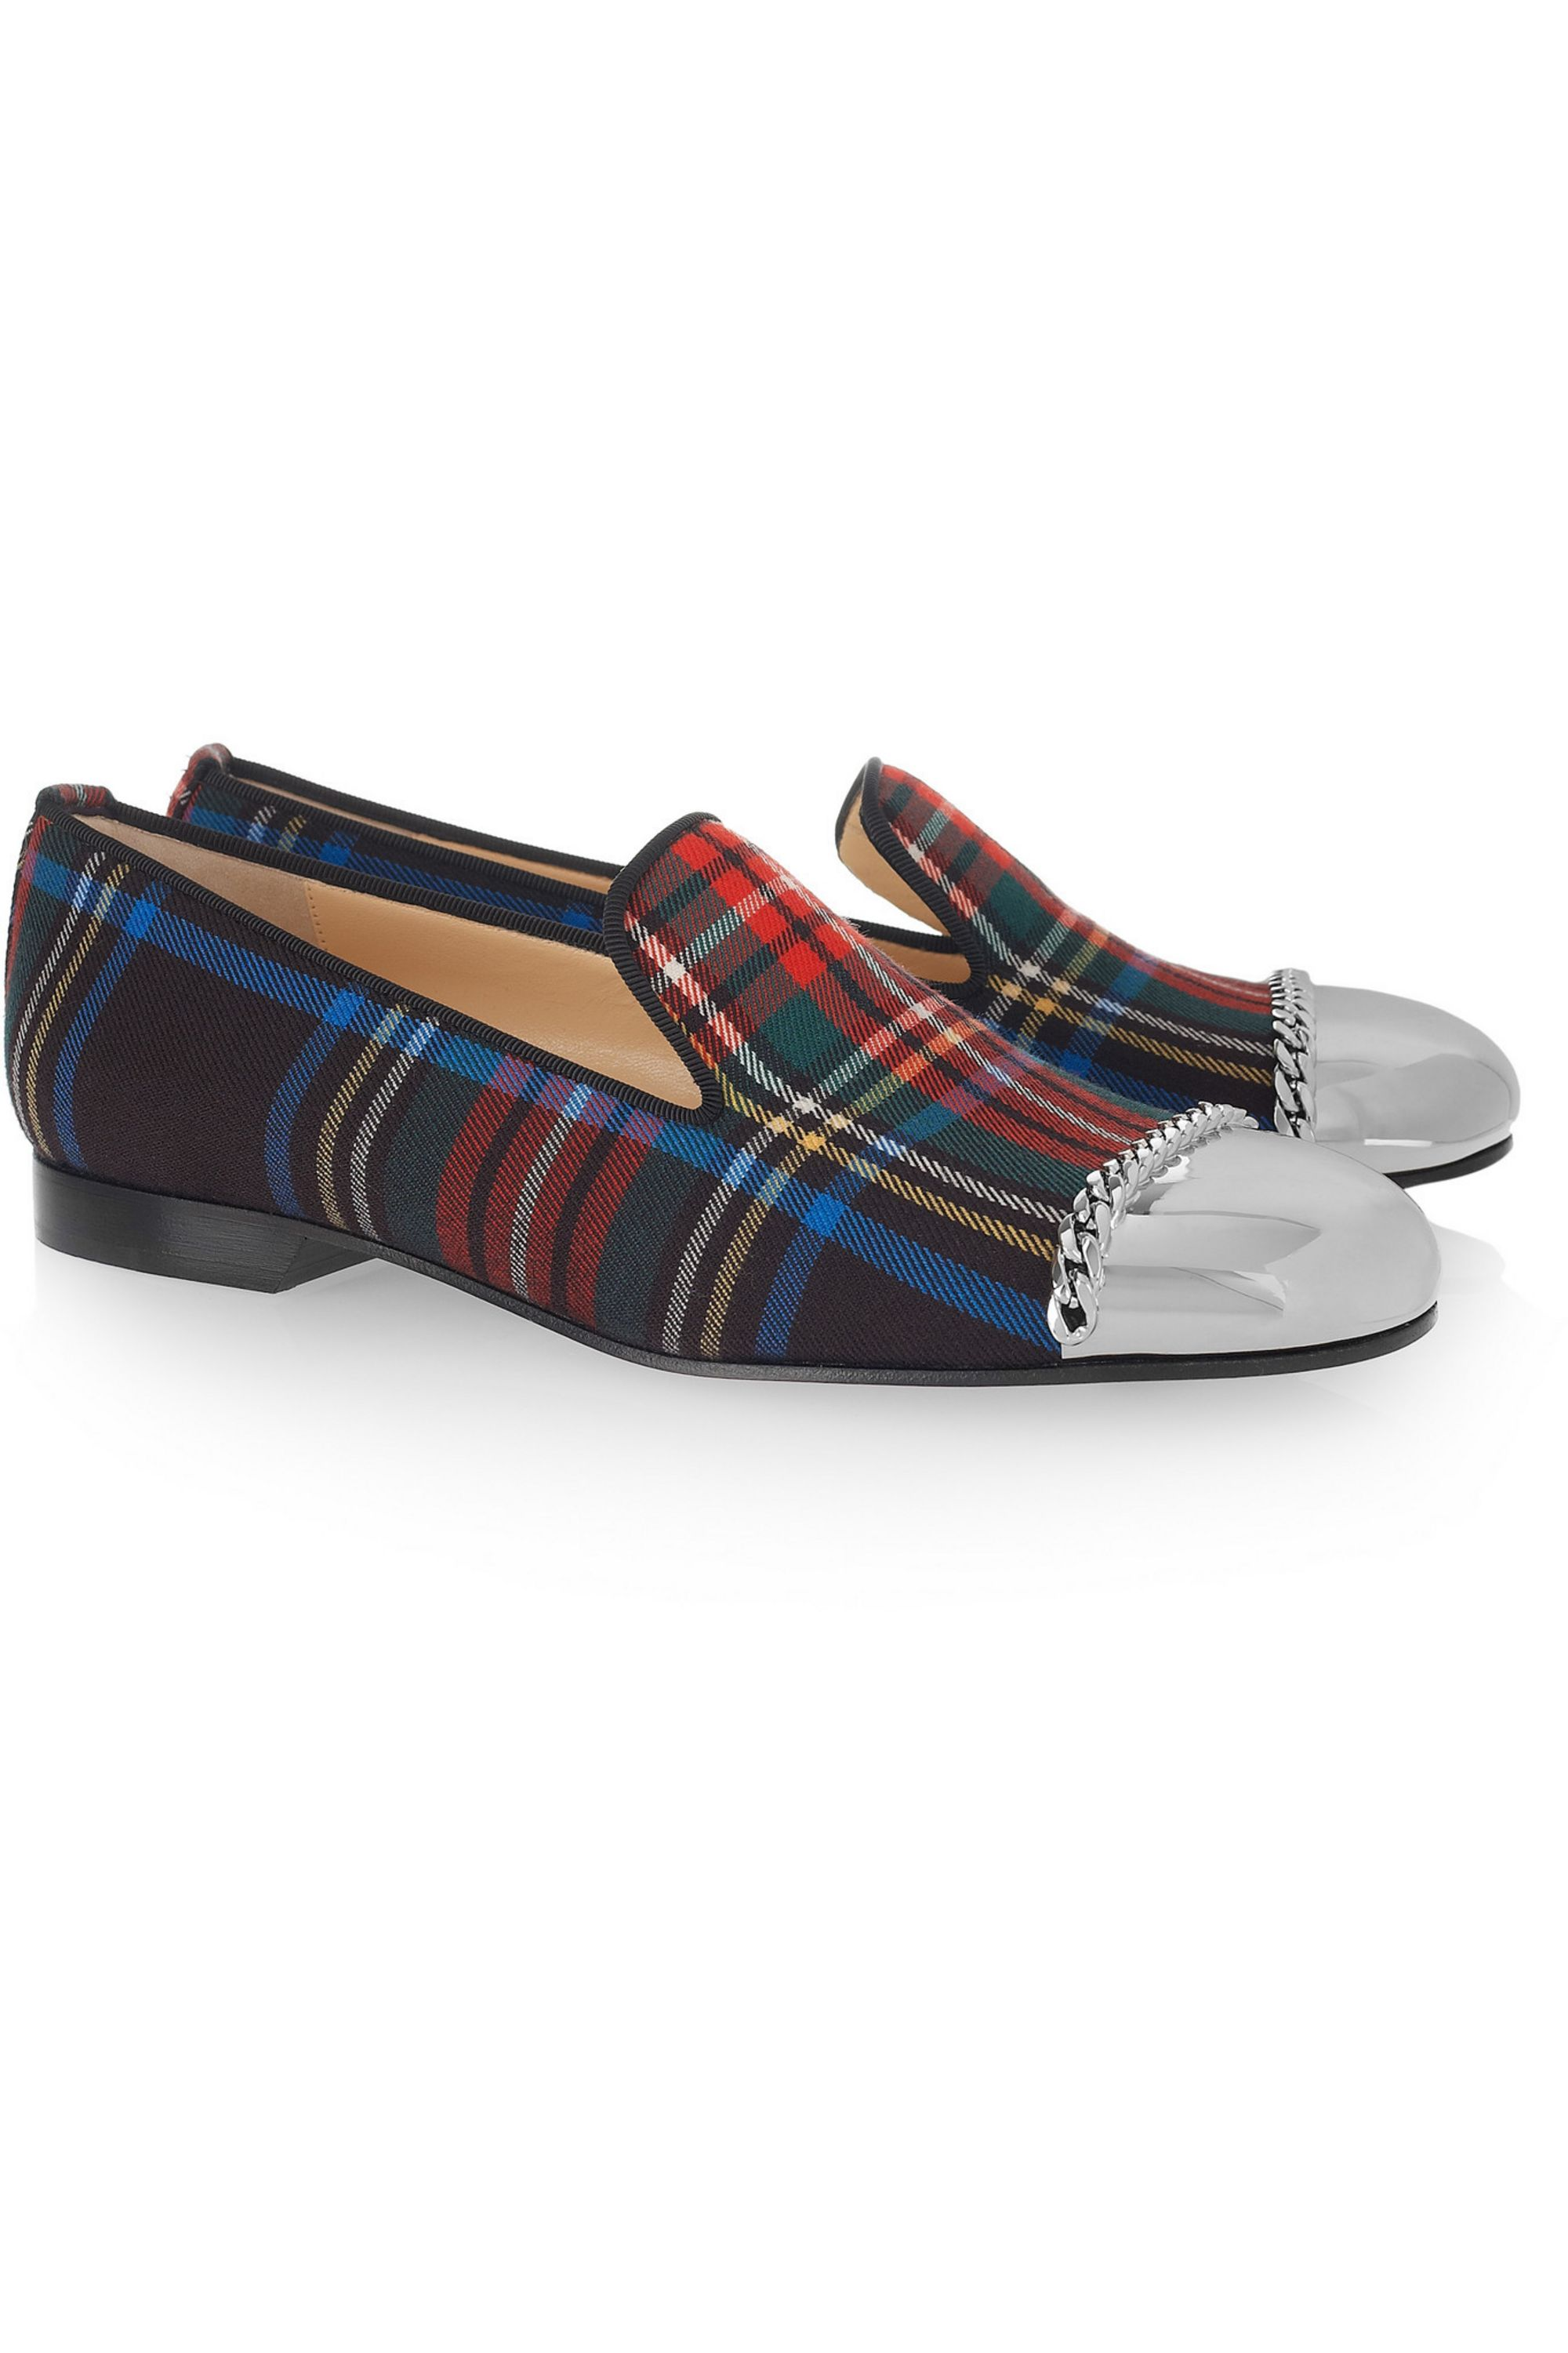 Christian Louboutin Rollergirl tartan canvas loafers